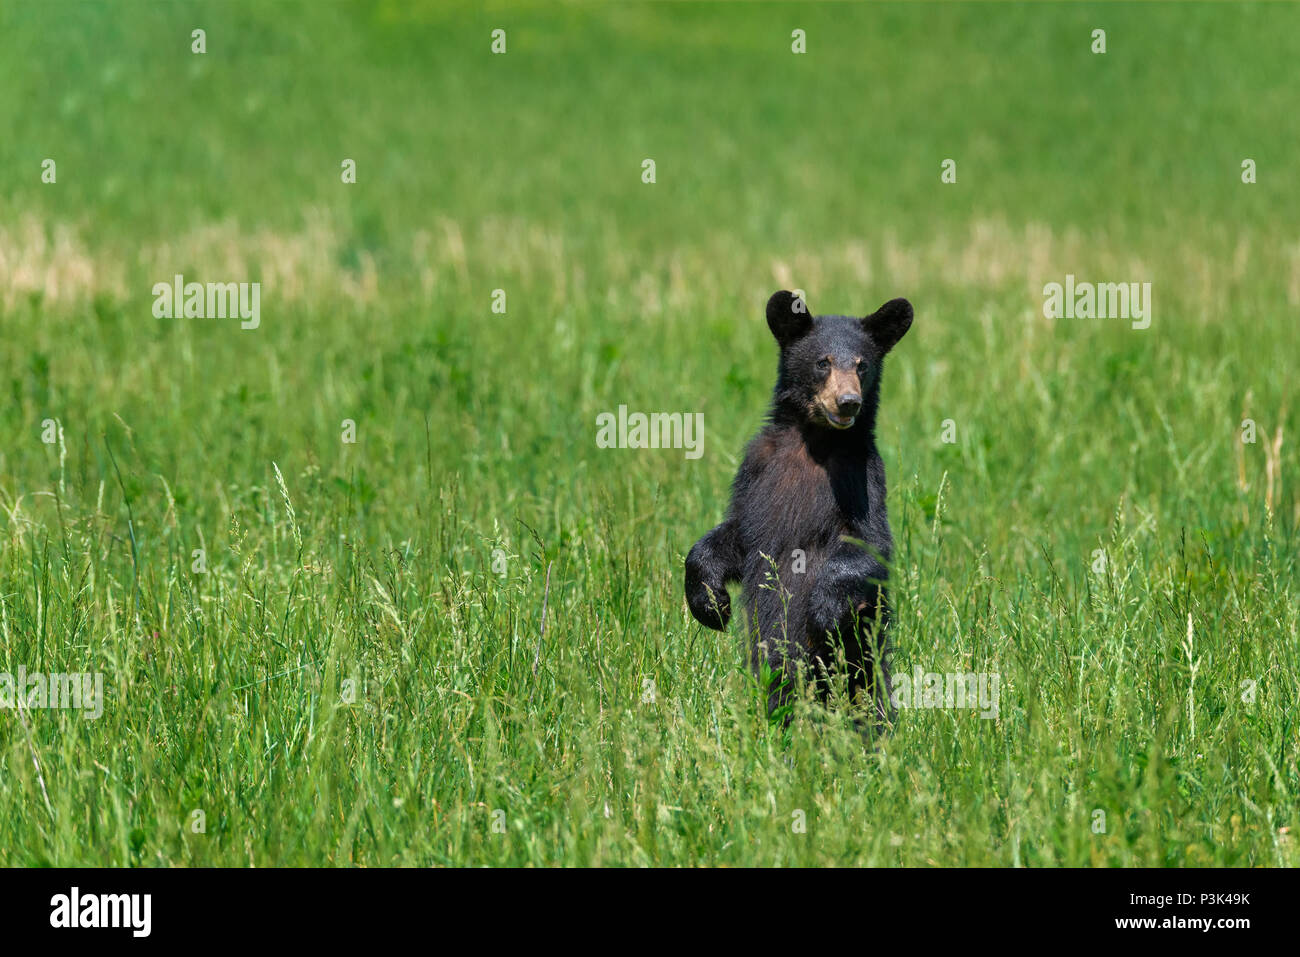 A north american black bear standing in a green field with copy space. Stock Photo